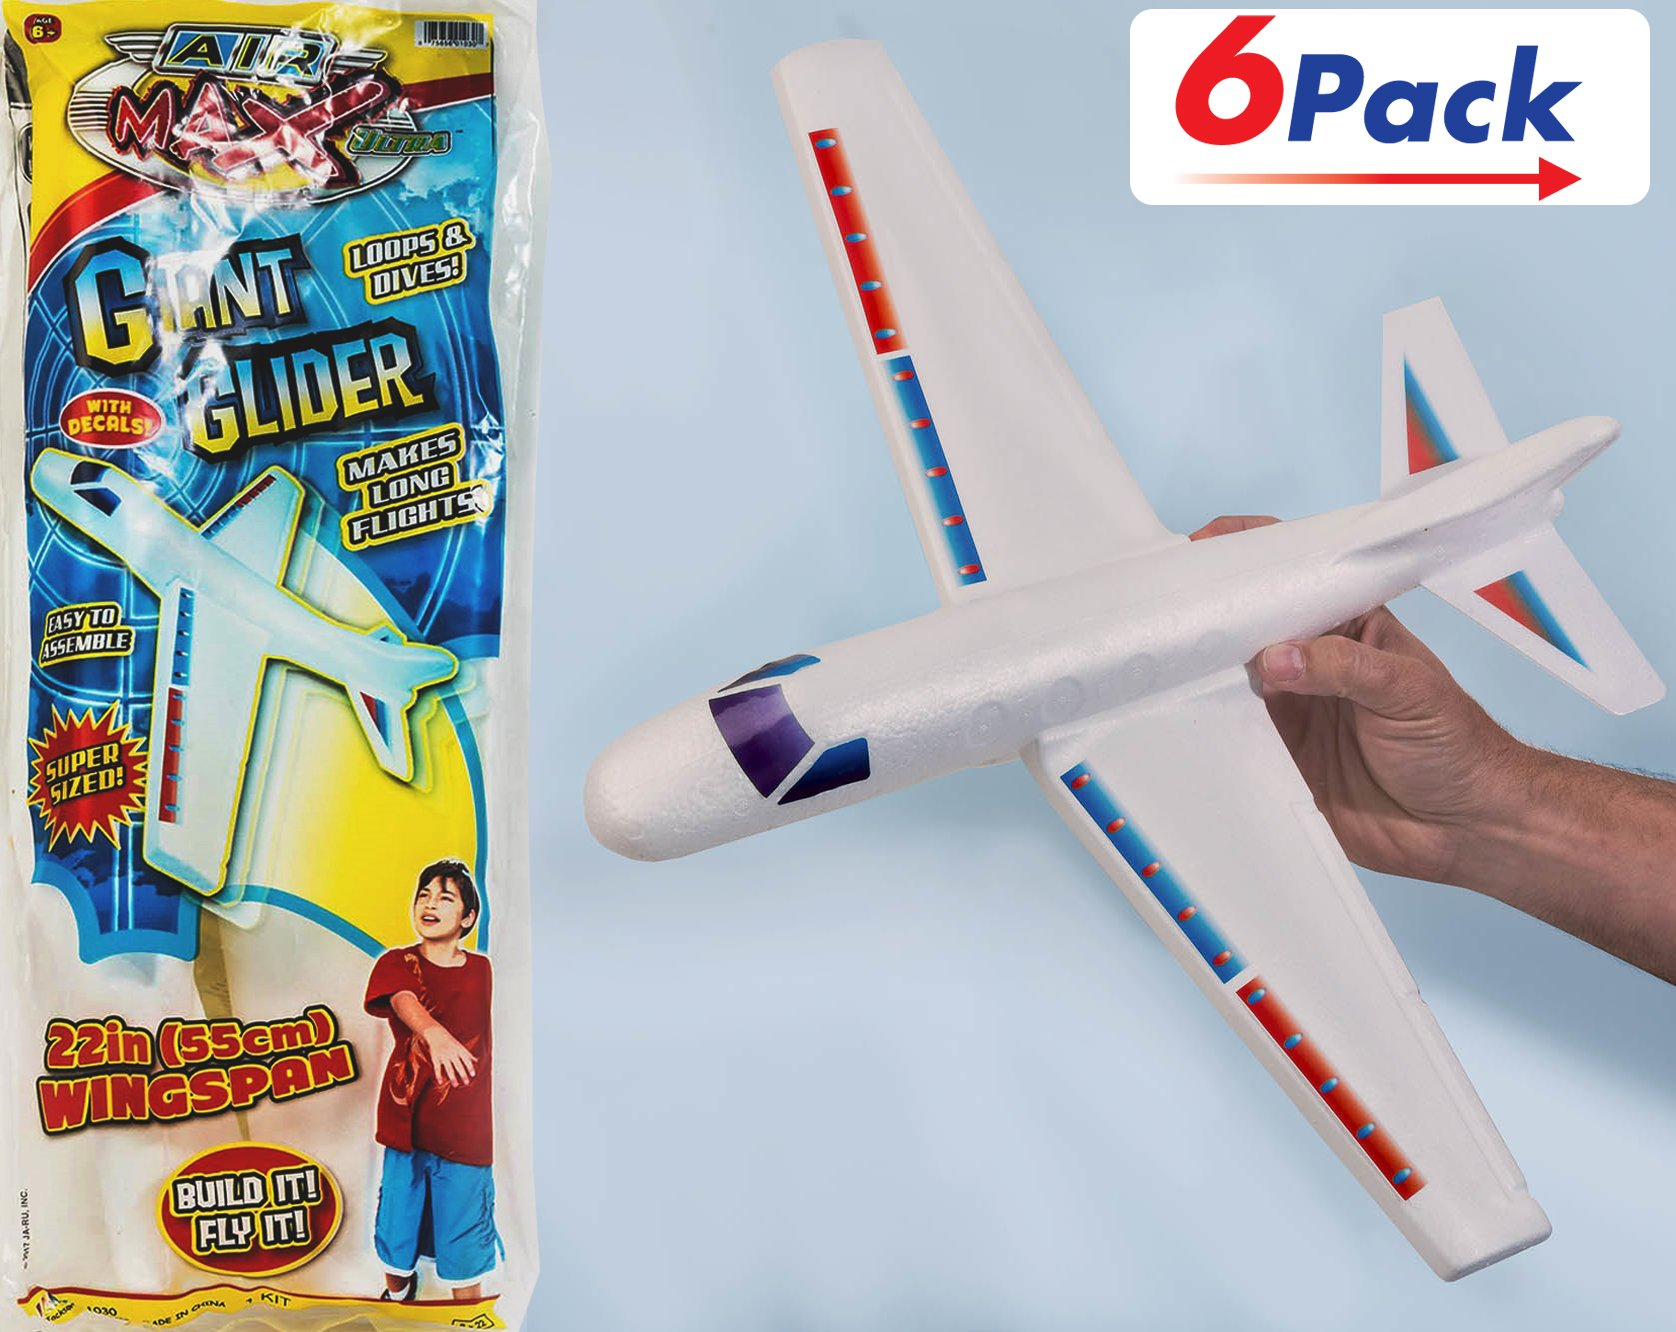 2GoodShop Giant Airplane Glider Kids Fying Toy Build It, Throw It and Watch It Glide Hours of Outdoor Fun Pack of 6 | Item #1030 by 2GoodShop (Image #1)